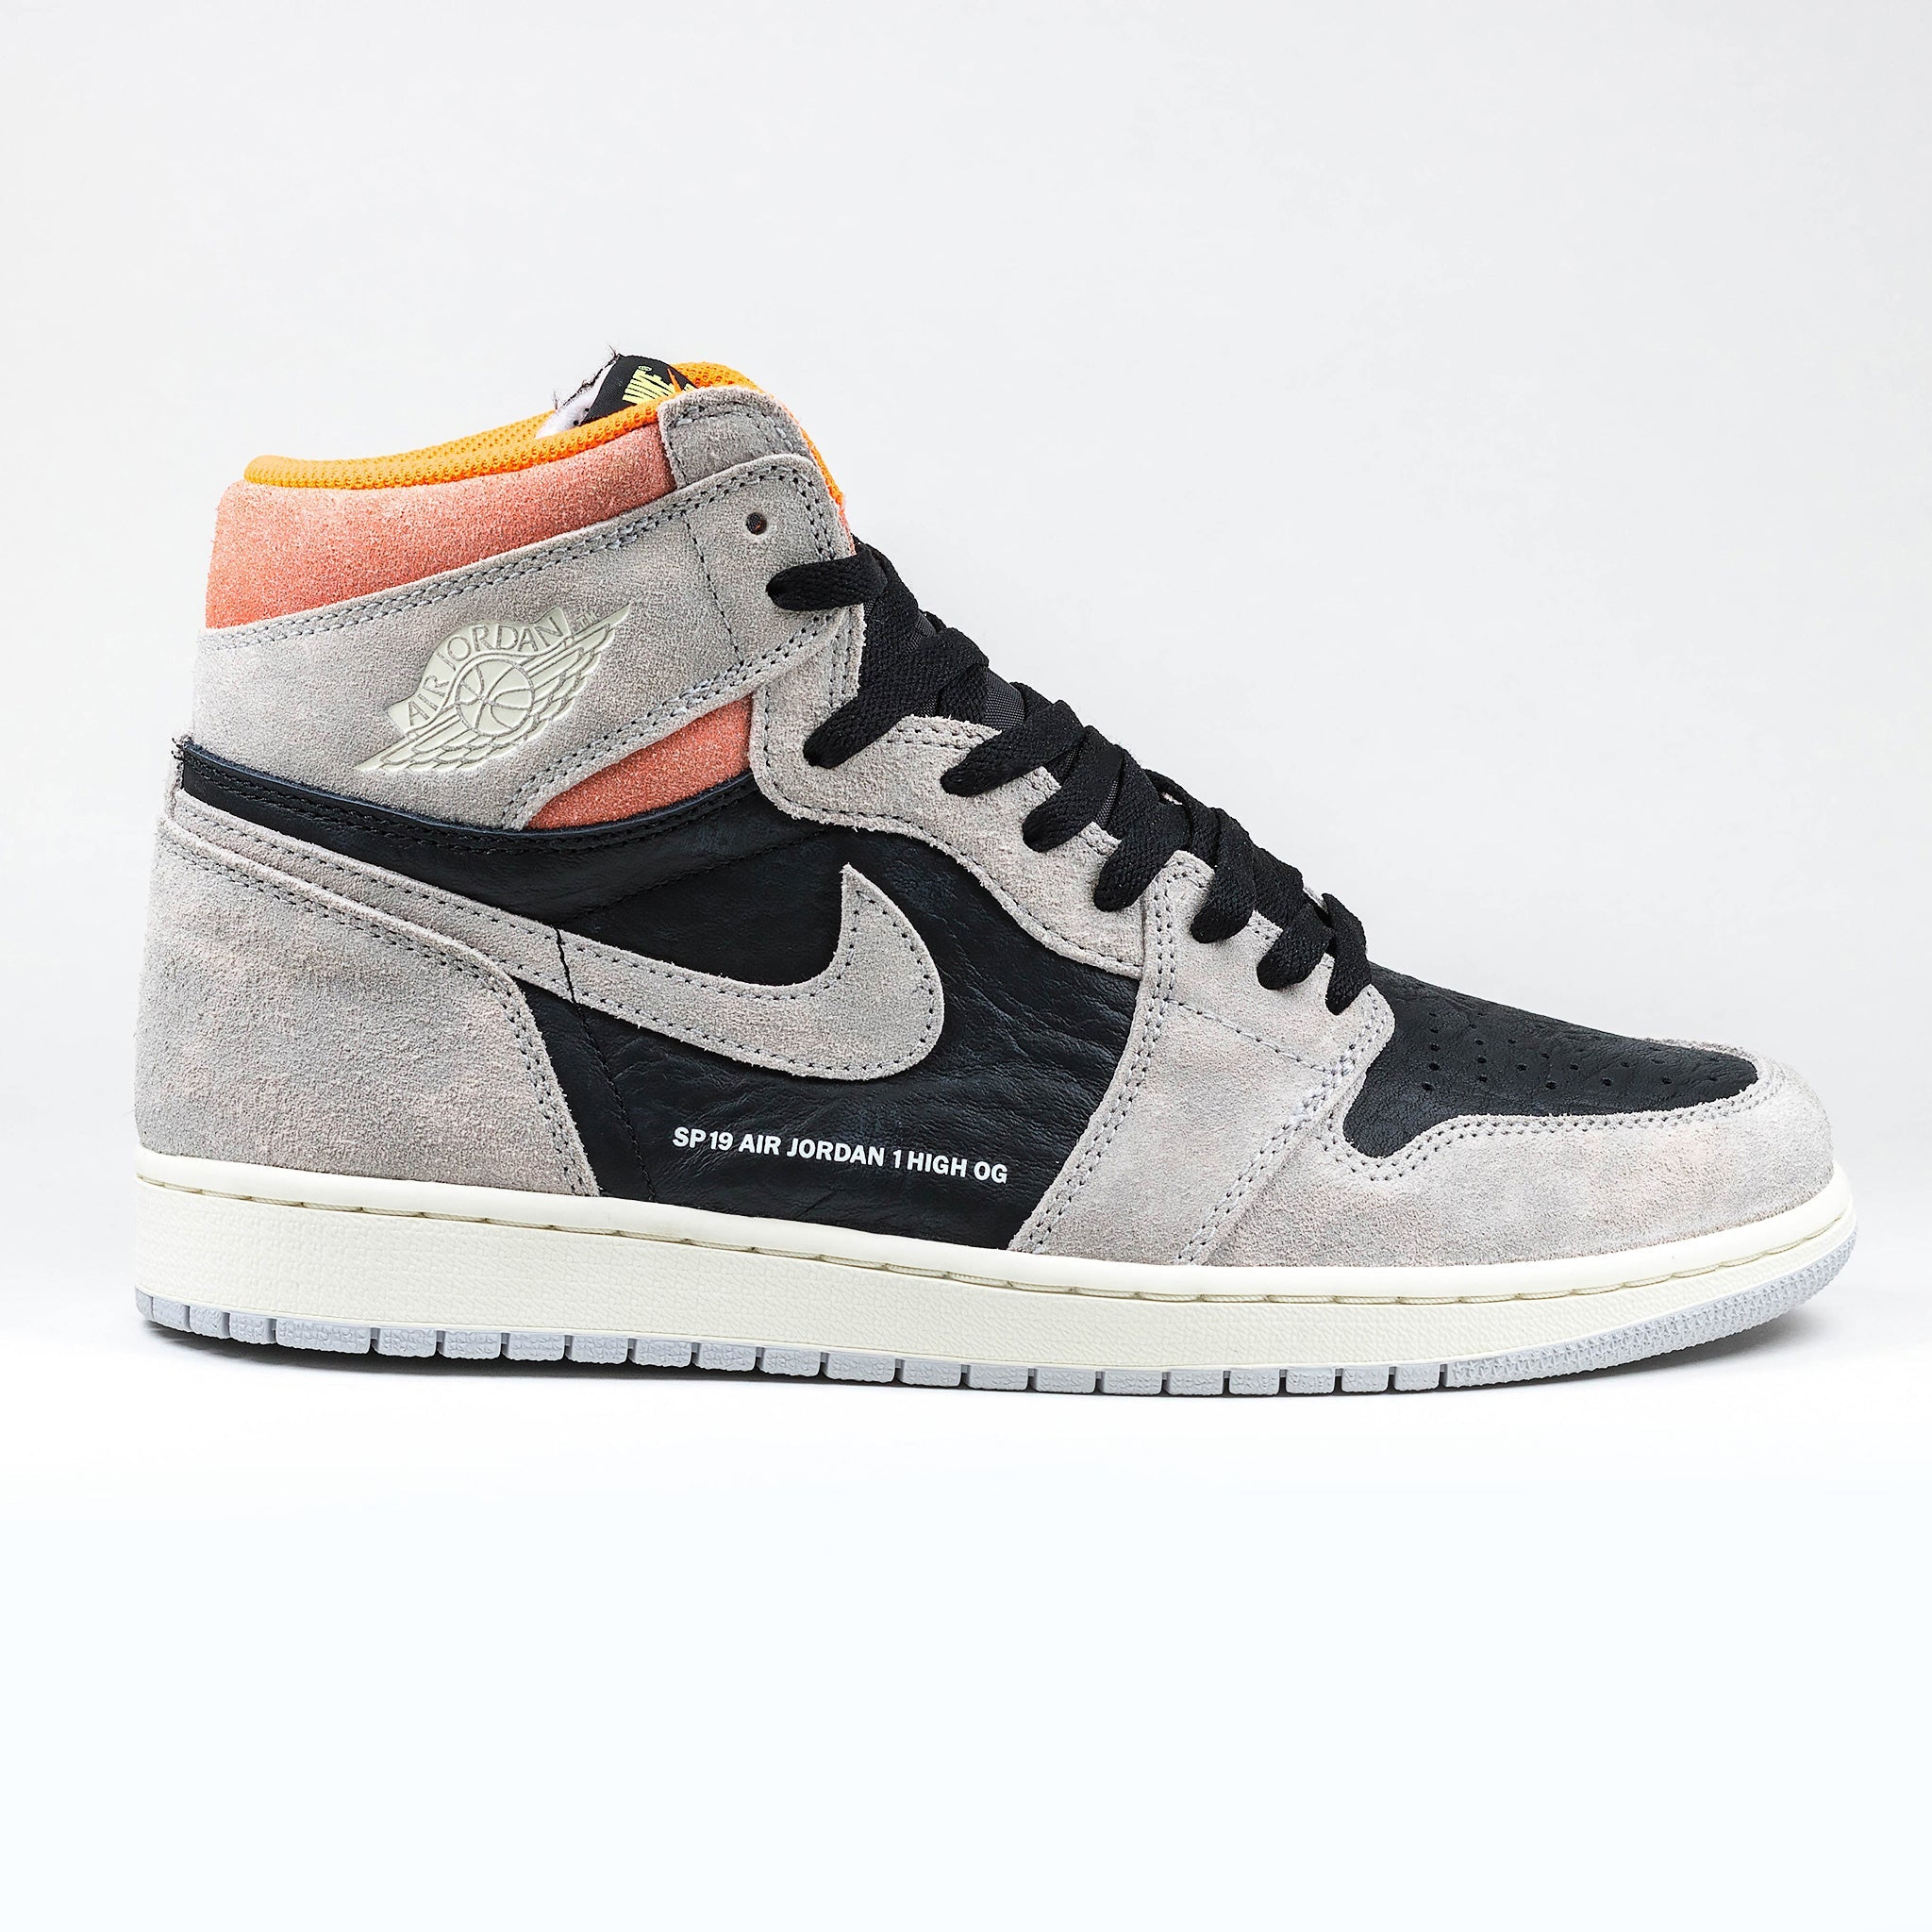 1b07b1c1ea7 Nike Air Jordan 1 Retro High Neutral Grey Hyper Crimson – Crepslocker